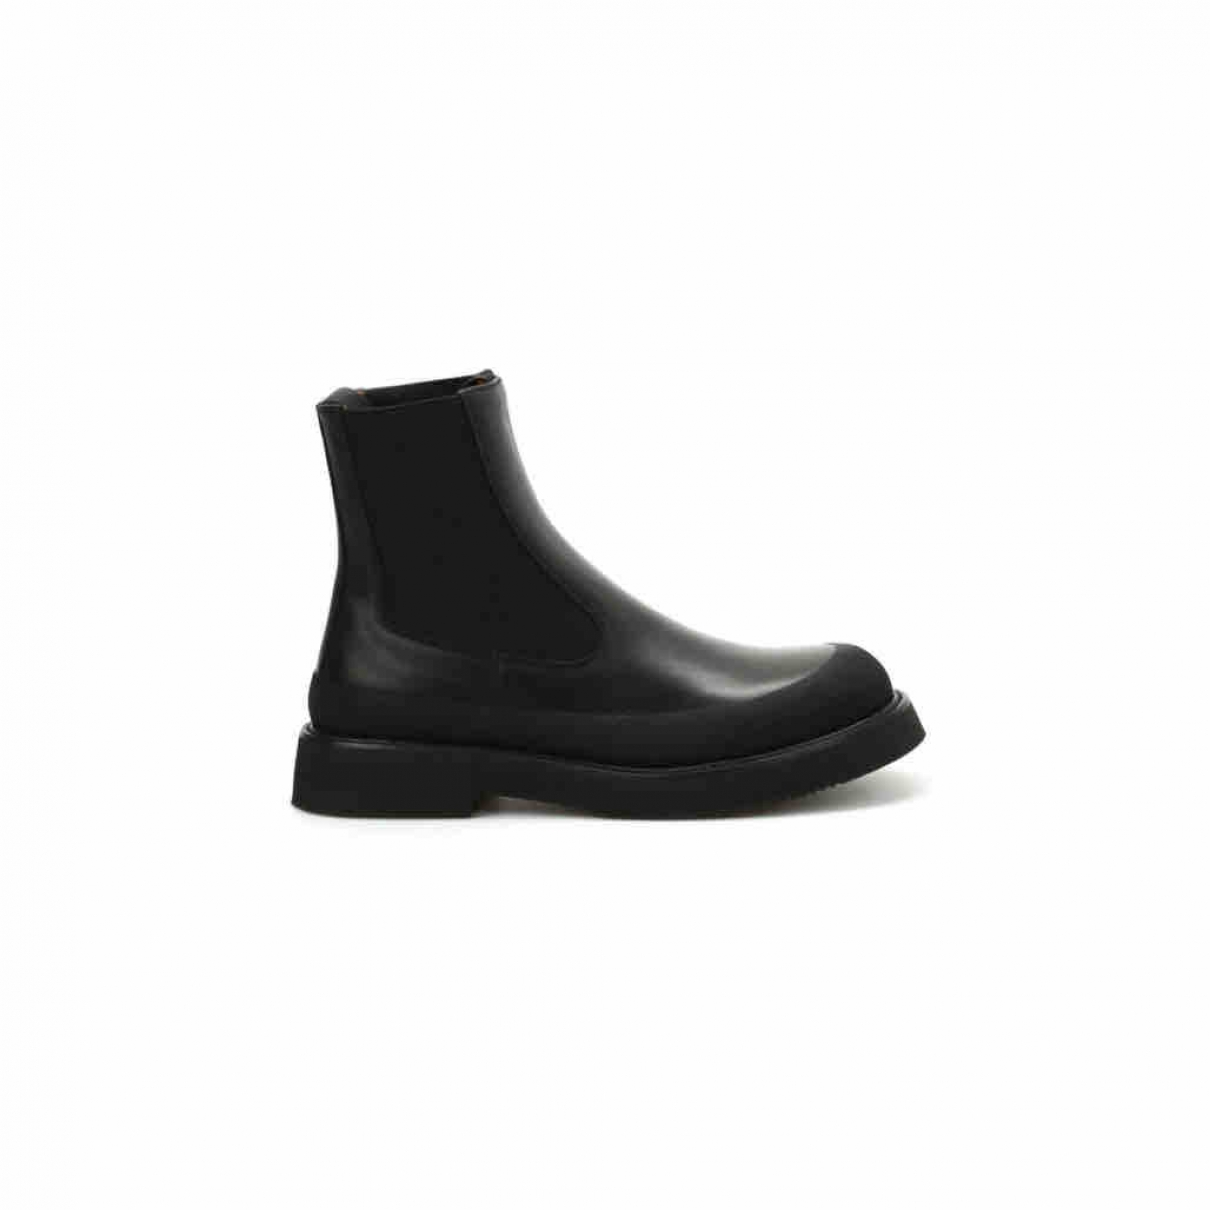 Celine \N Black Leather Ankle boots for Women 36 EU